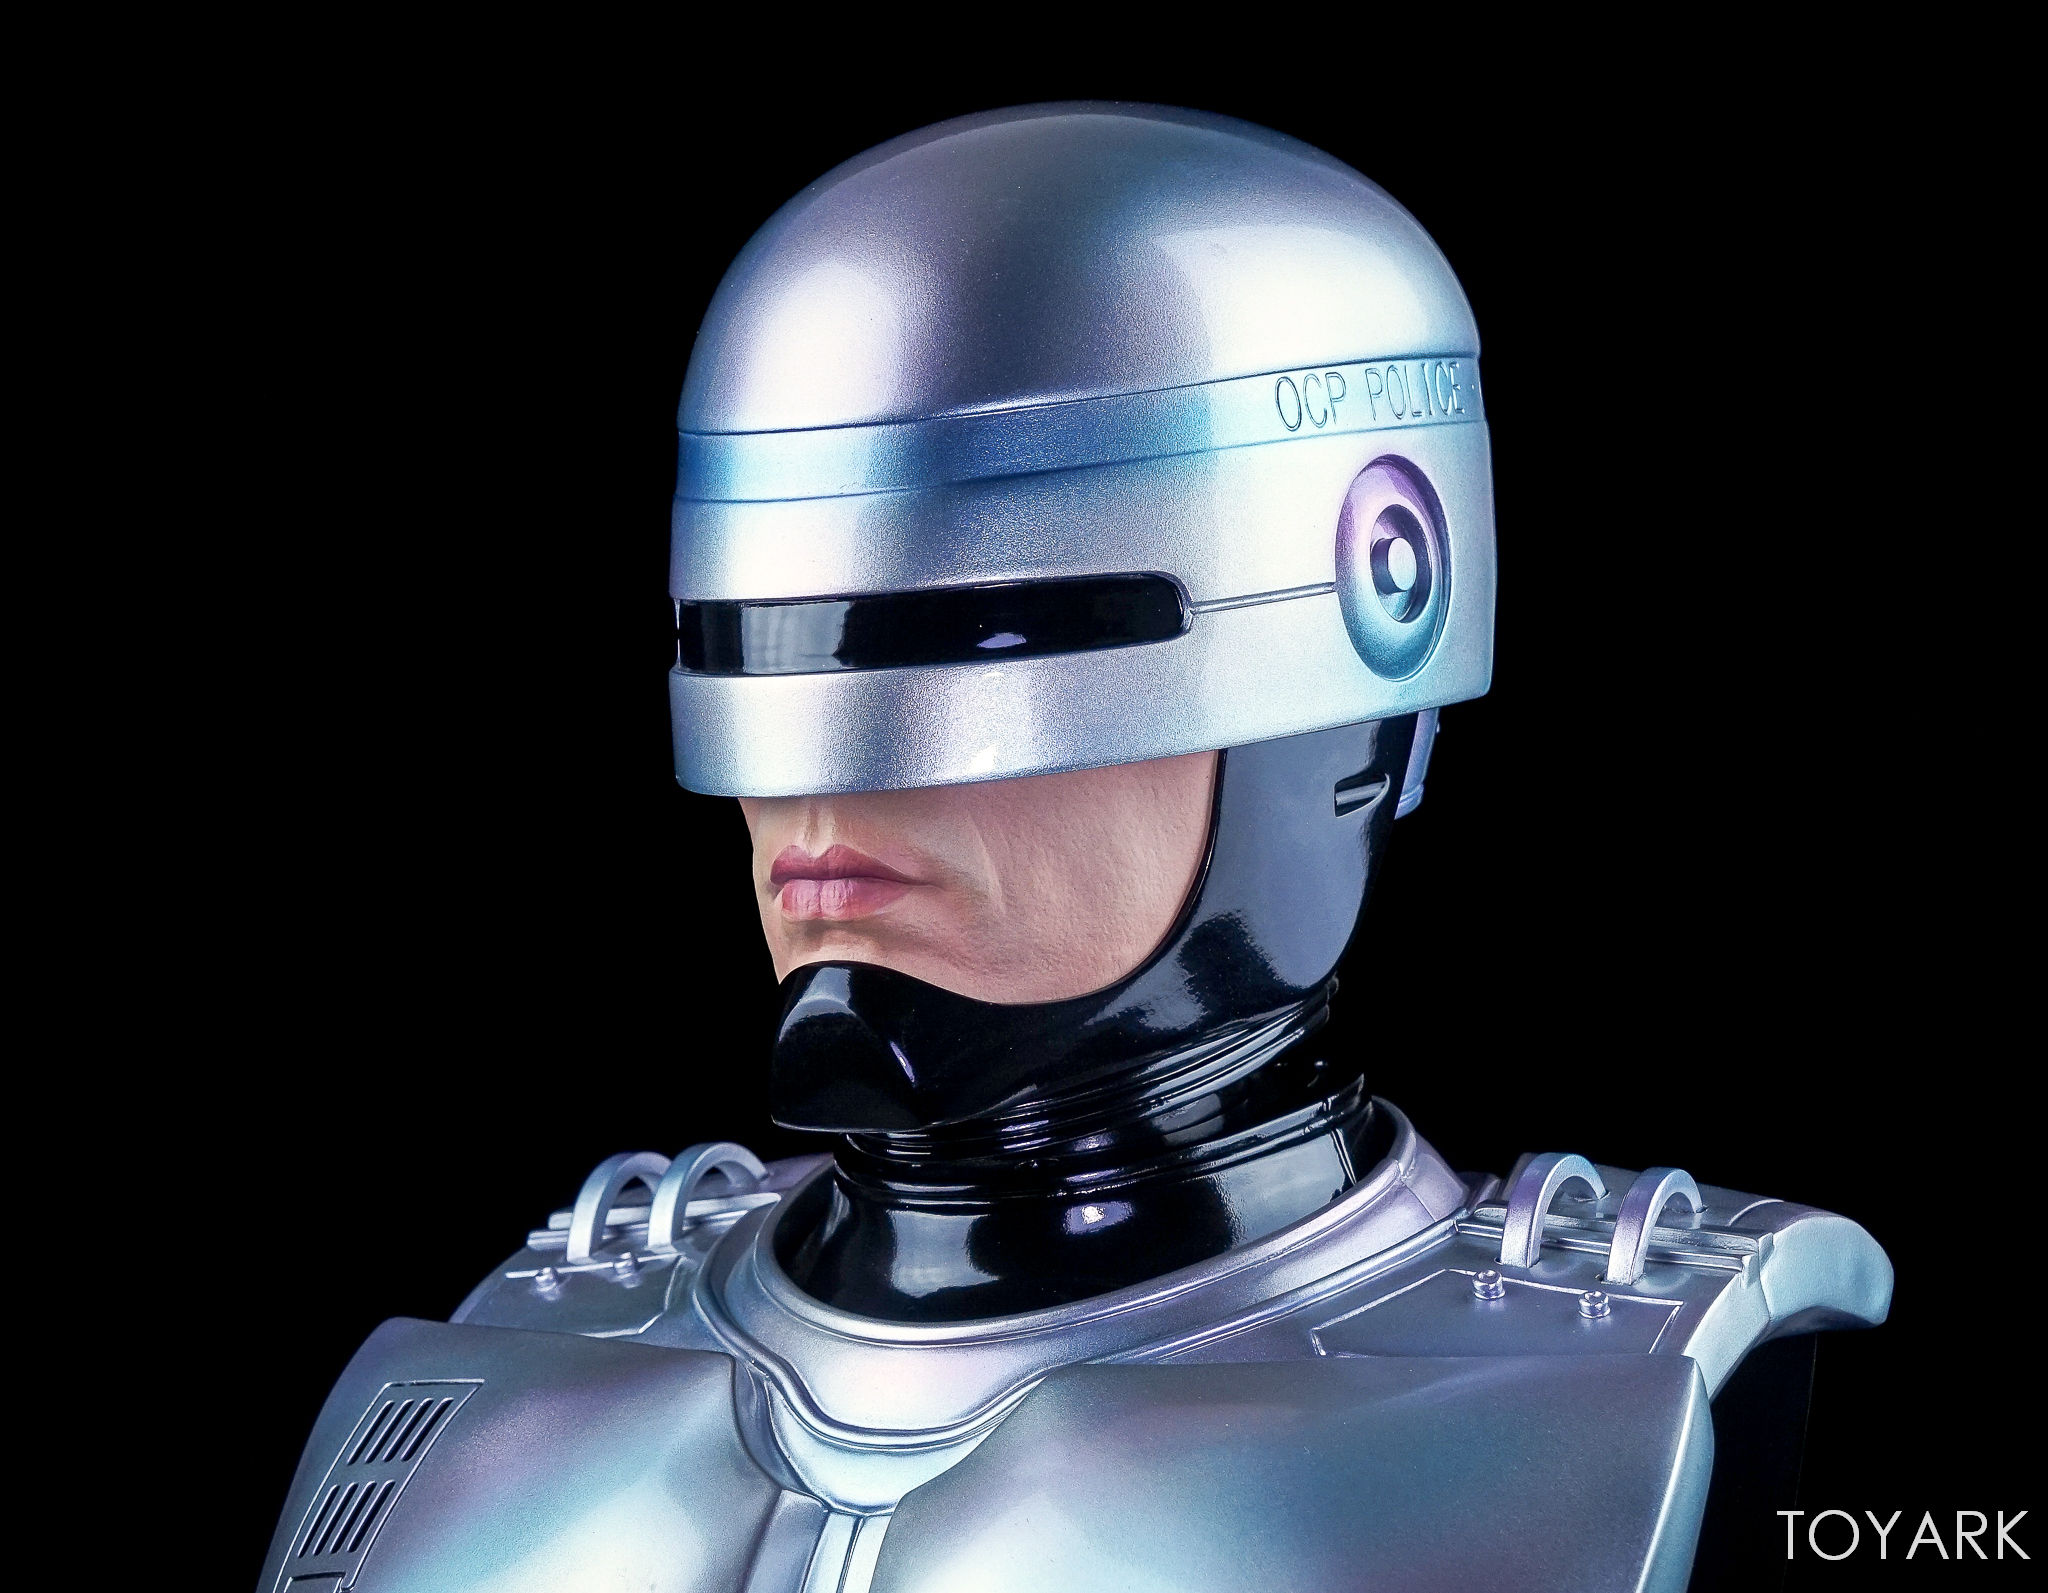 http://news.toyark.com/wp-content/uploads/sites/4/2017/09/Chronicle-Robocop-Half-Scale-Bust-011.jpg